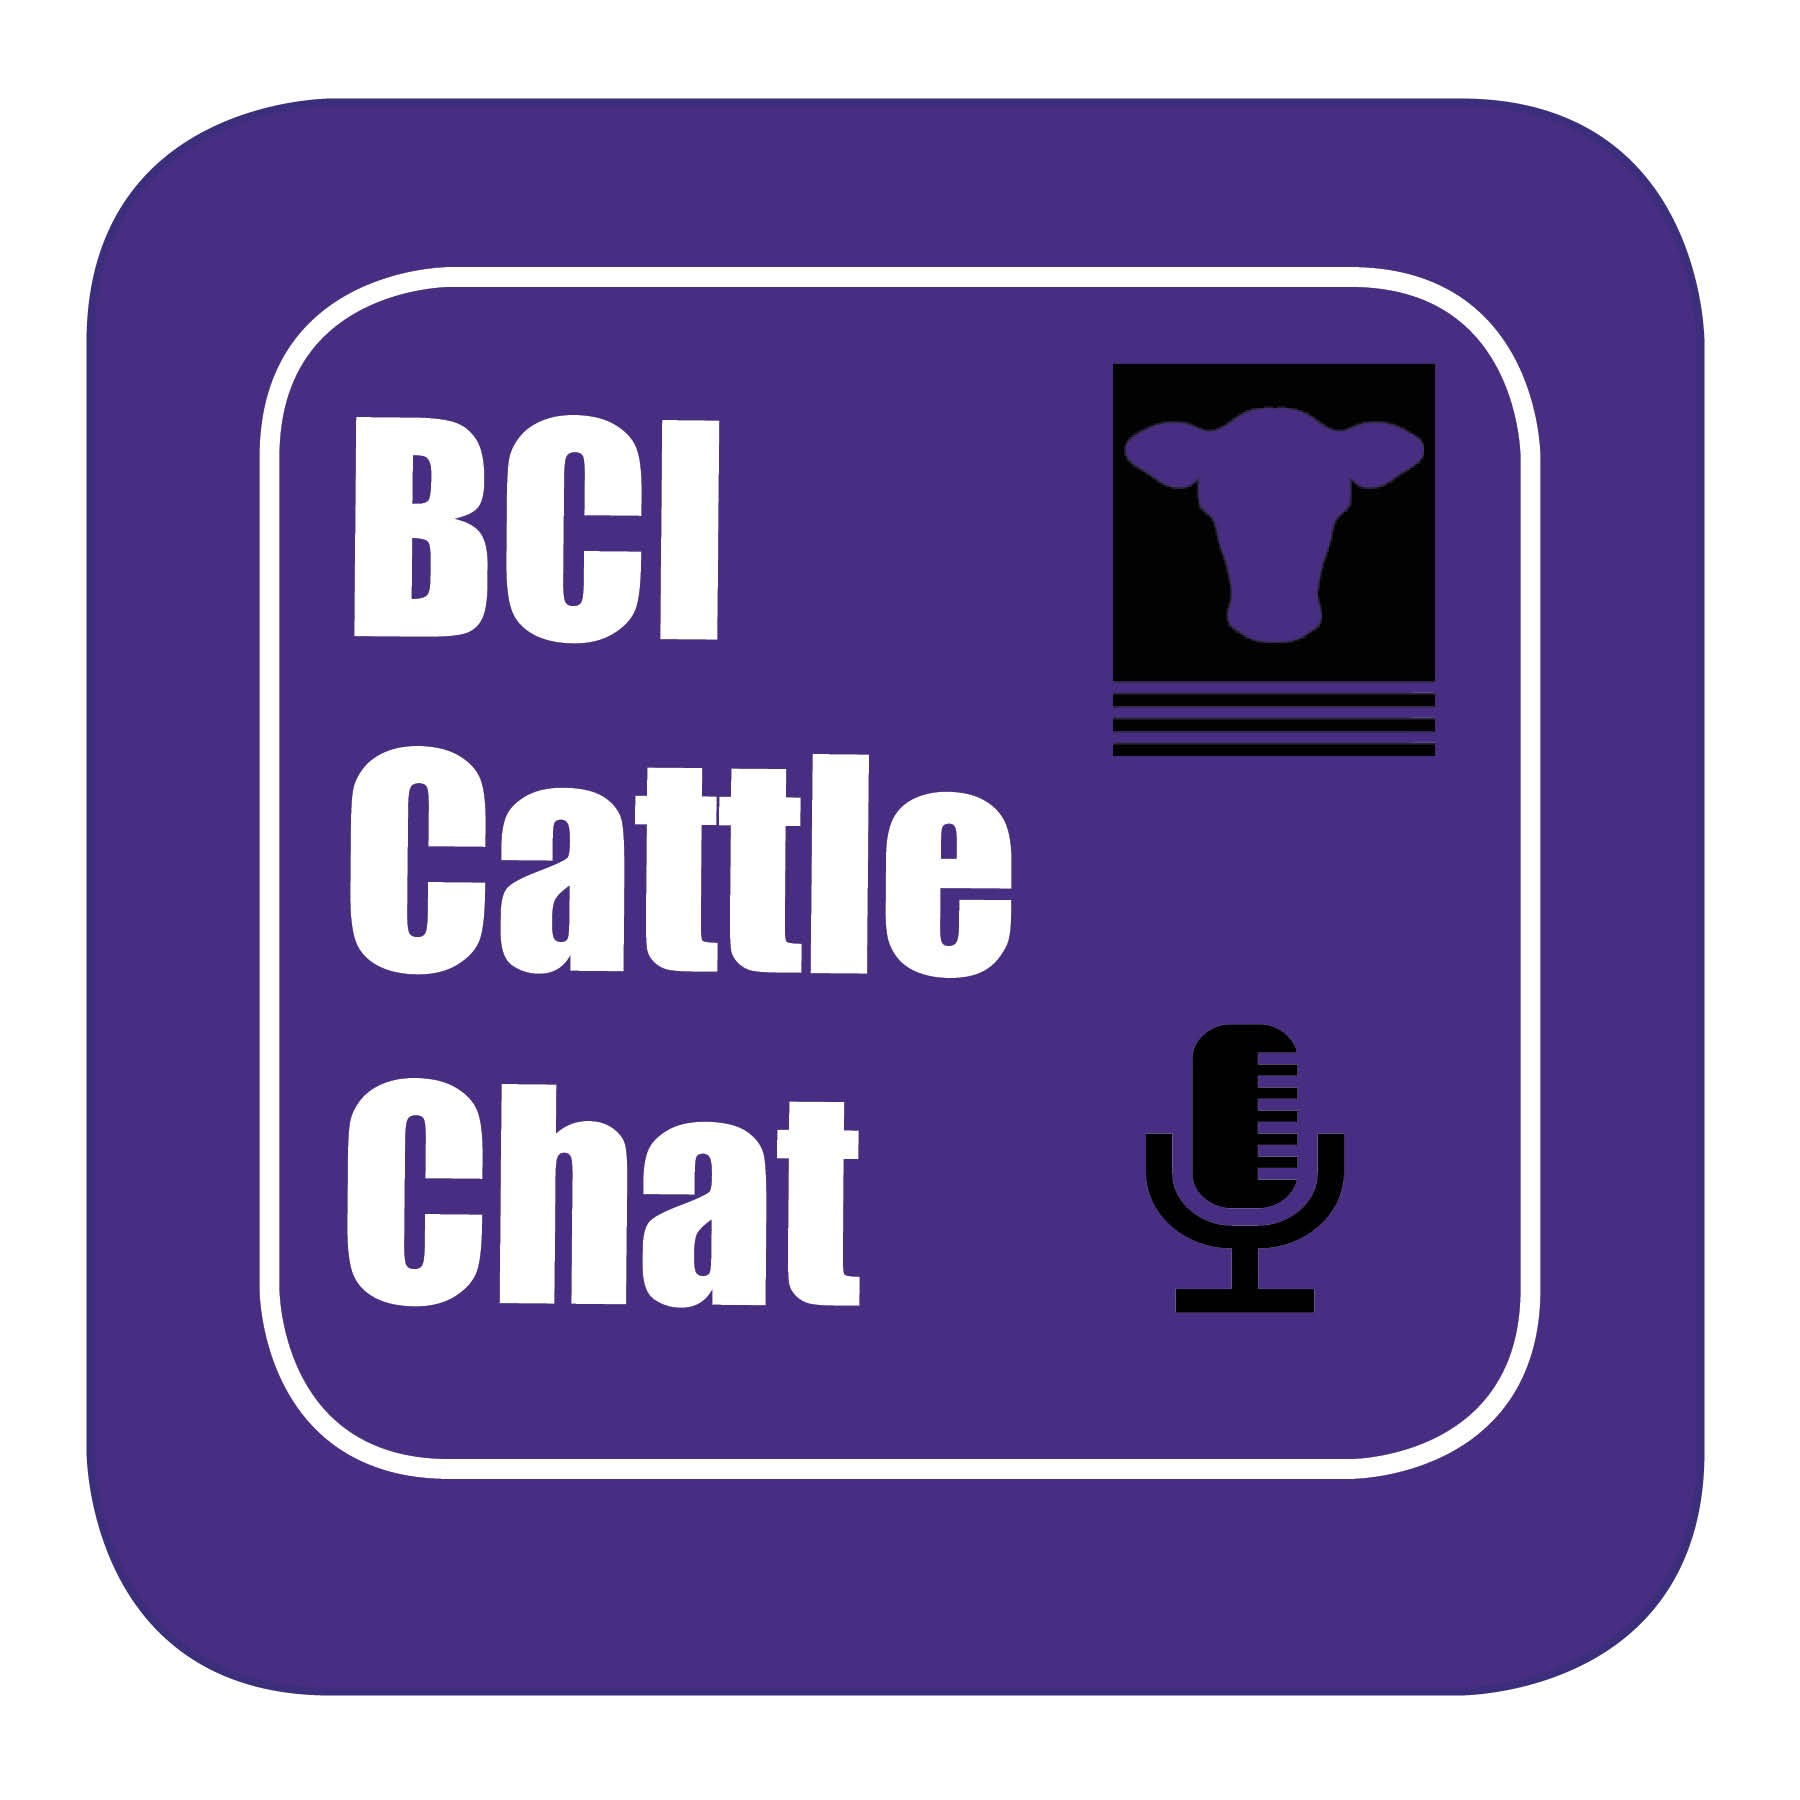 BCI Cattle Chat - Episode 42